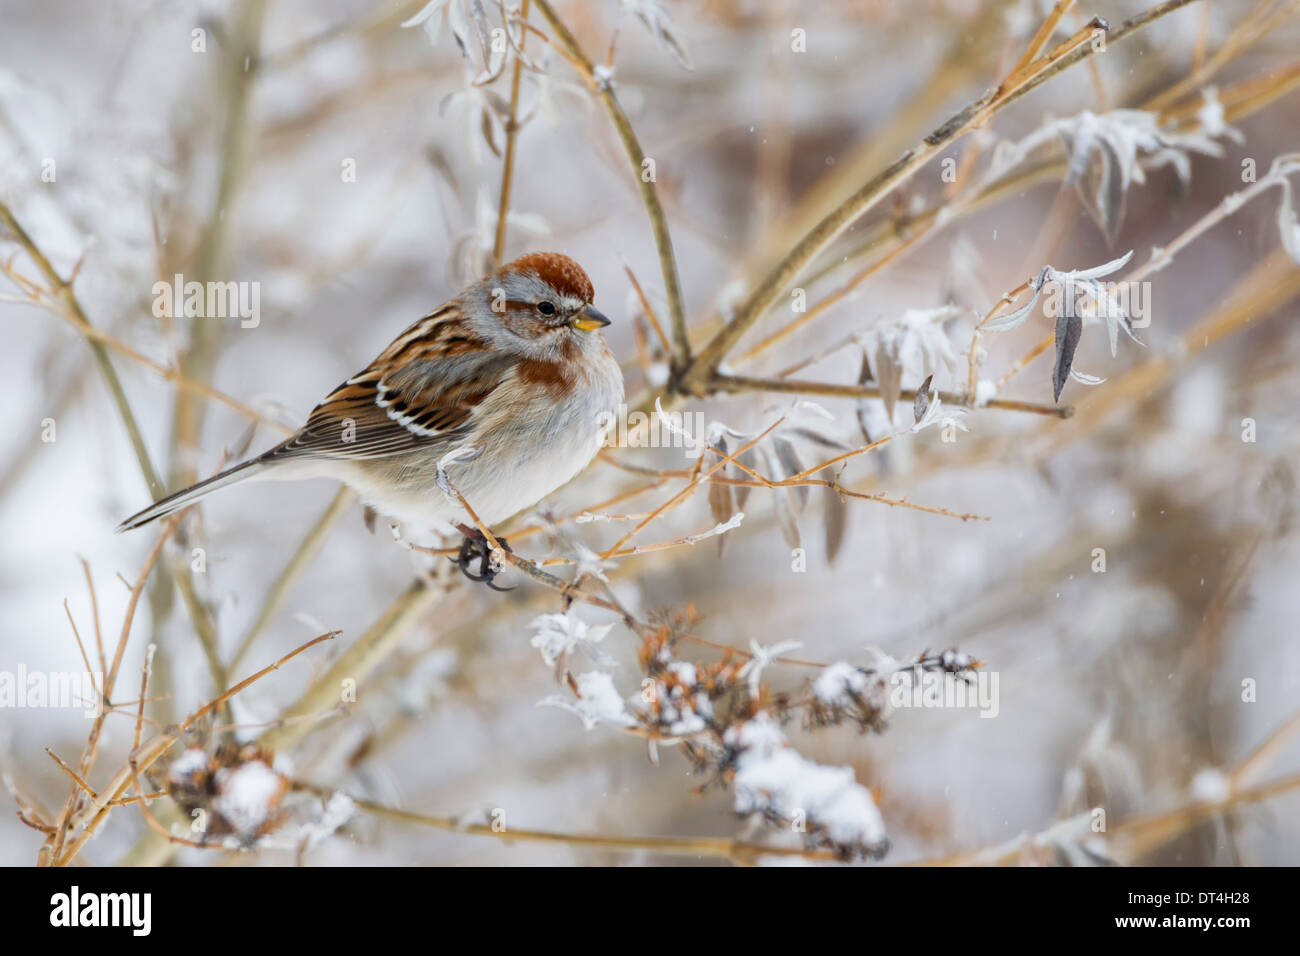 Chipping Sparrow in winter and snow - Stock Image